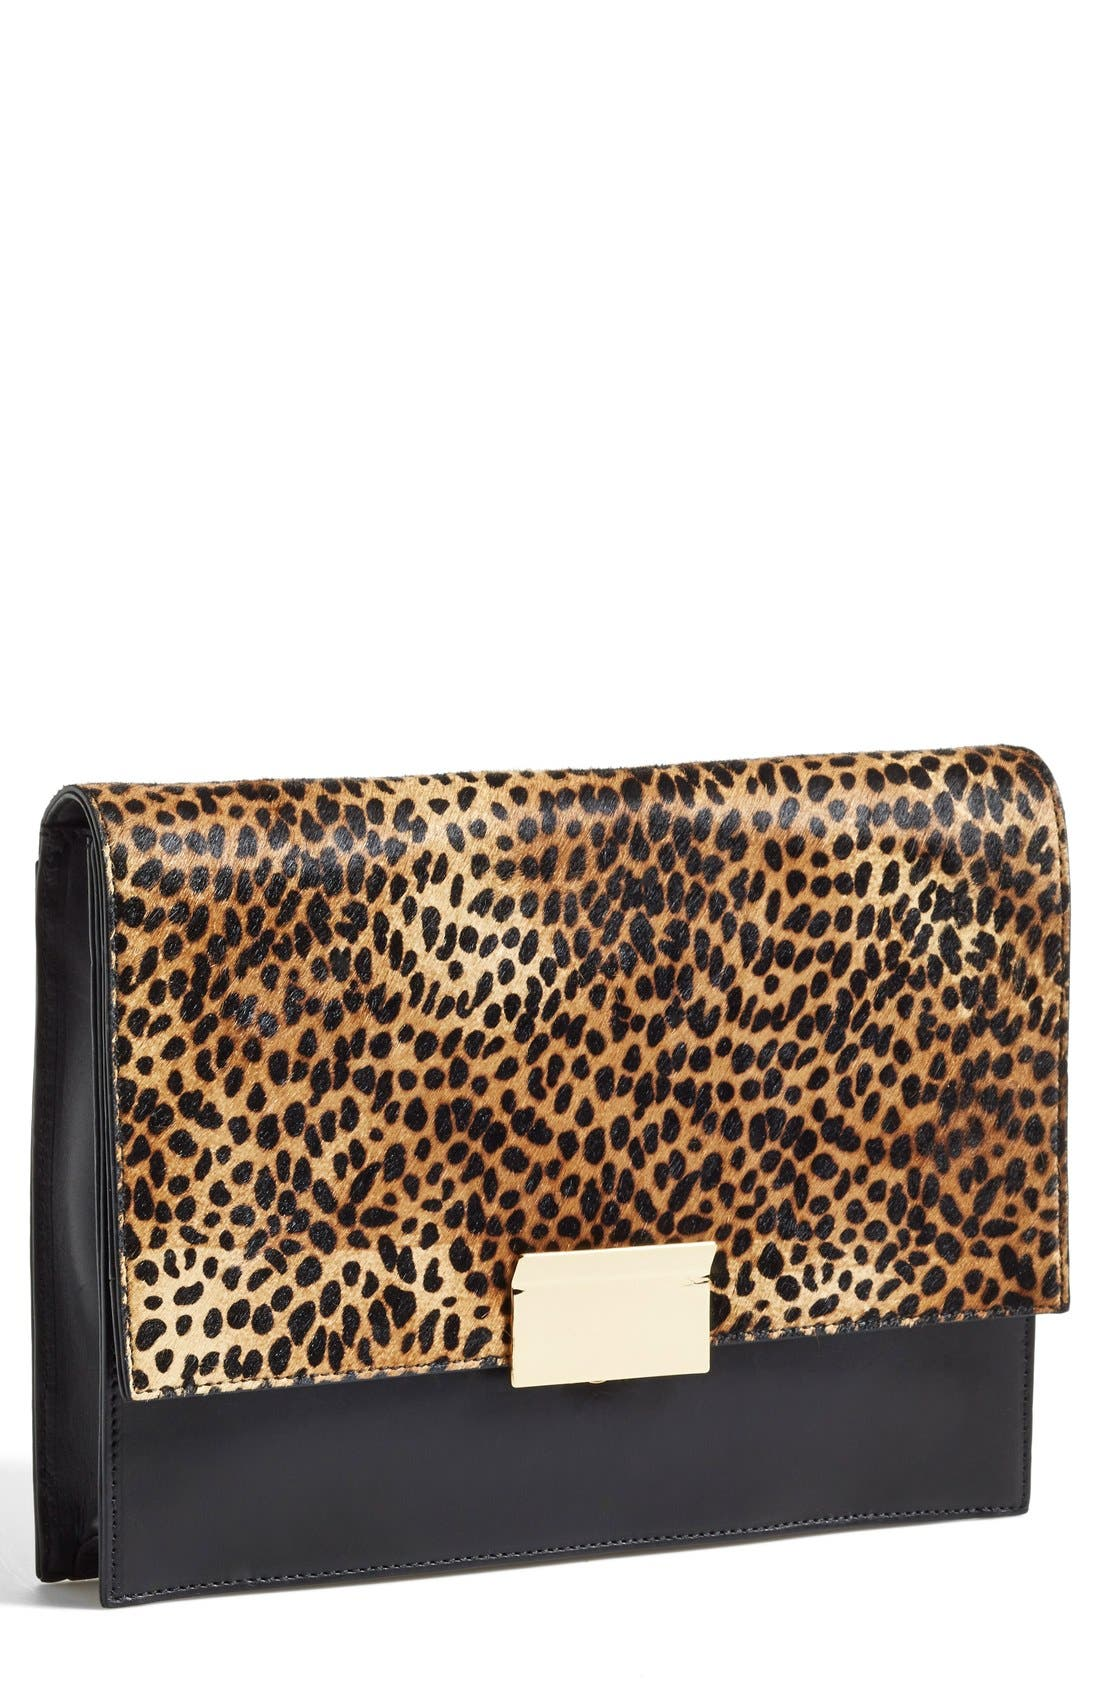 Alternate Image 1 Selected - Vince Camuto 'Caleb ' Clutch